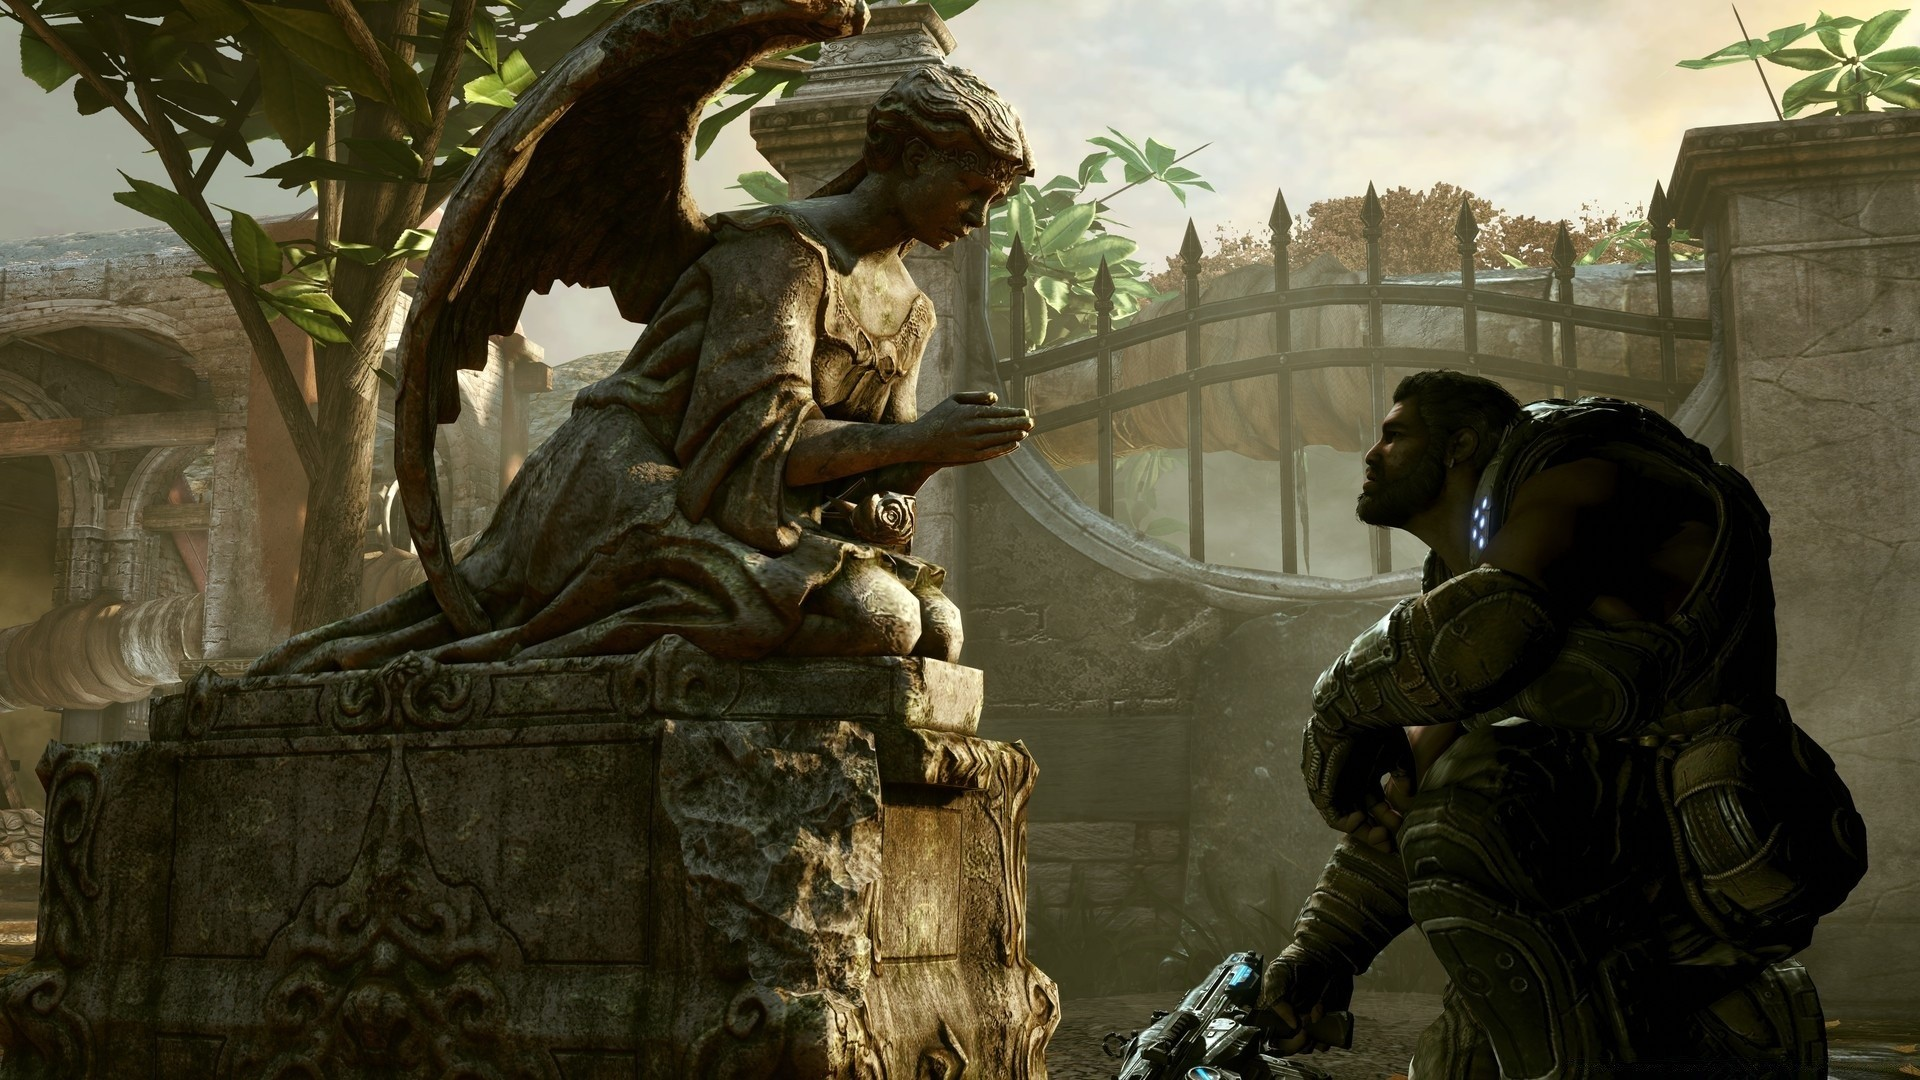 Gears Of War 3 Hd Wallpapers For Android: Gears Of War. Android Wallpapers For Free